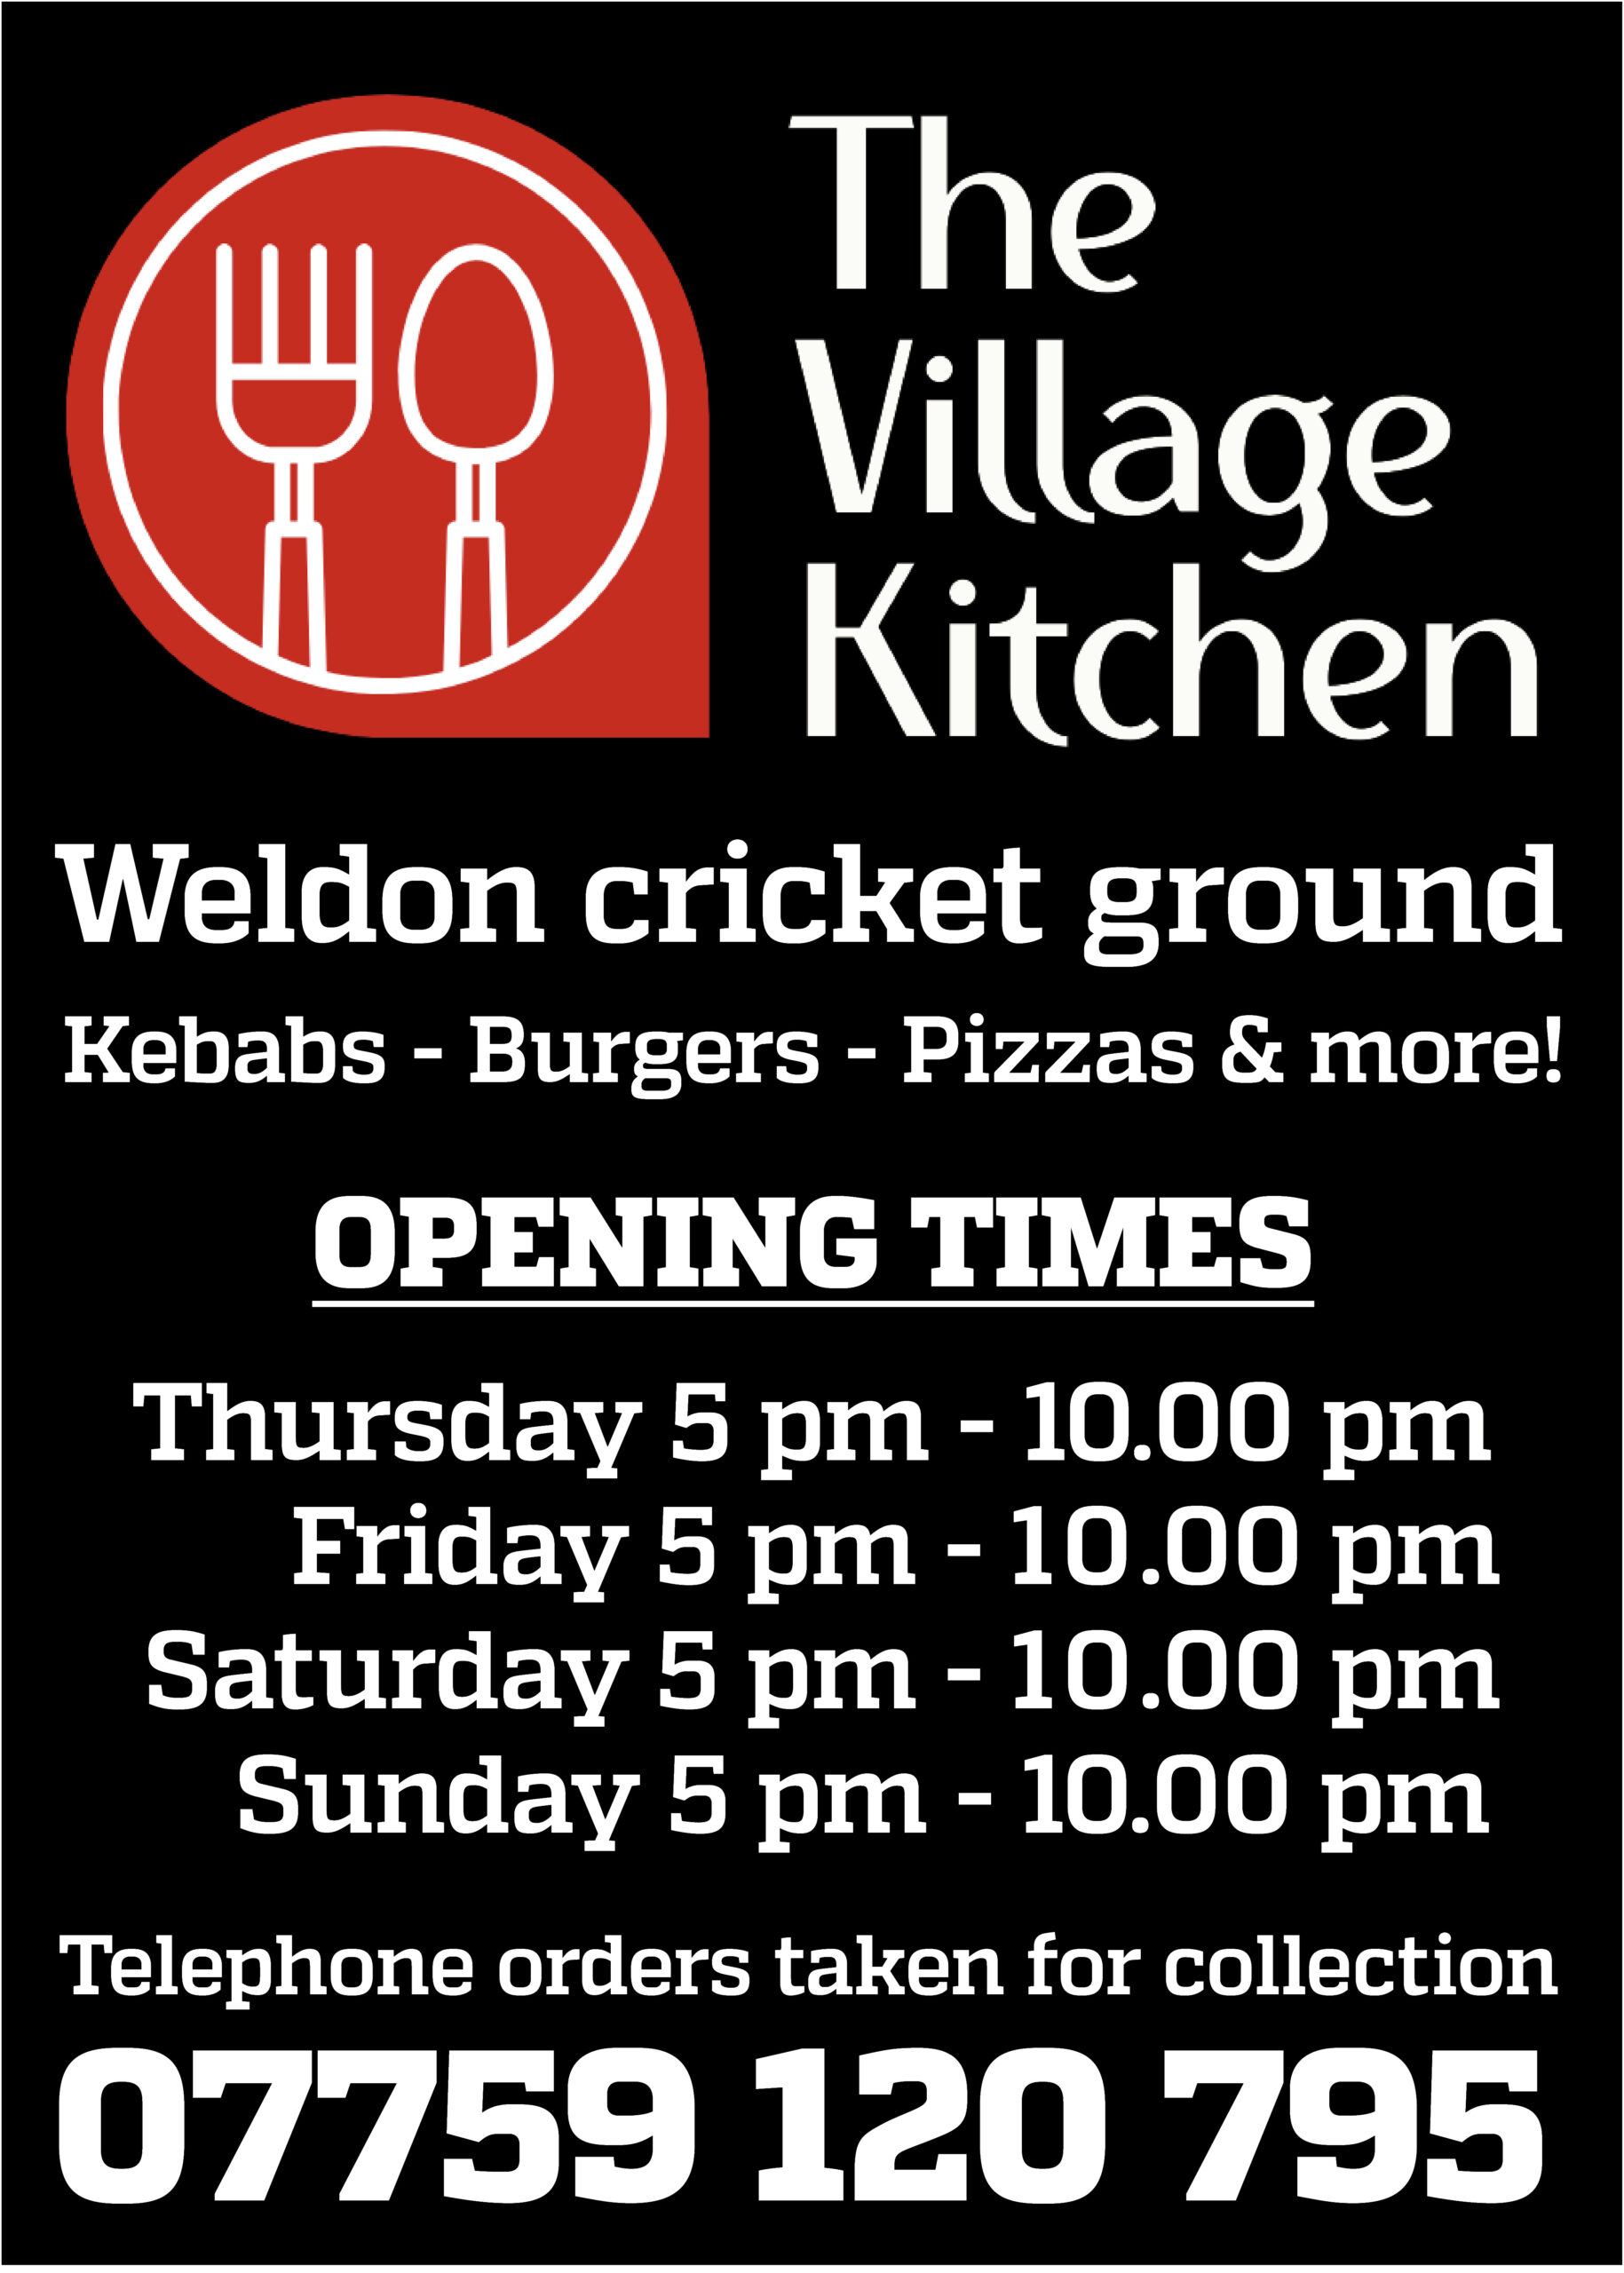 The Village kitchen Sidebar Ad